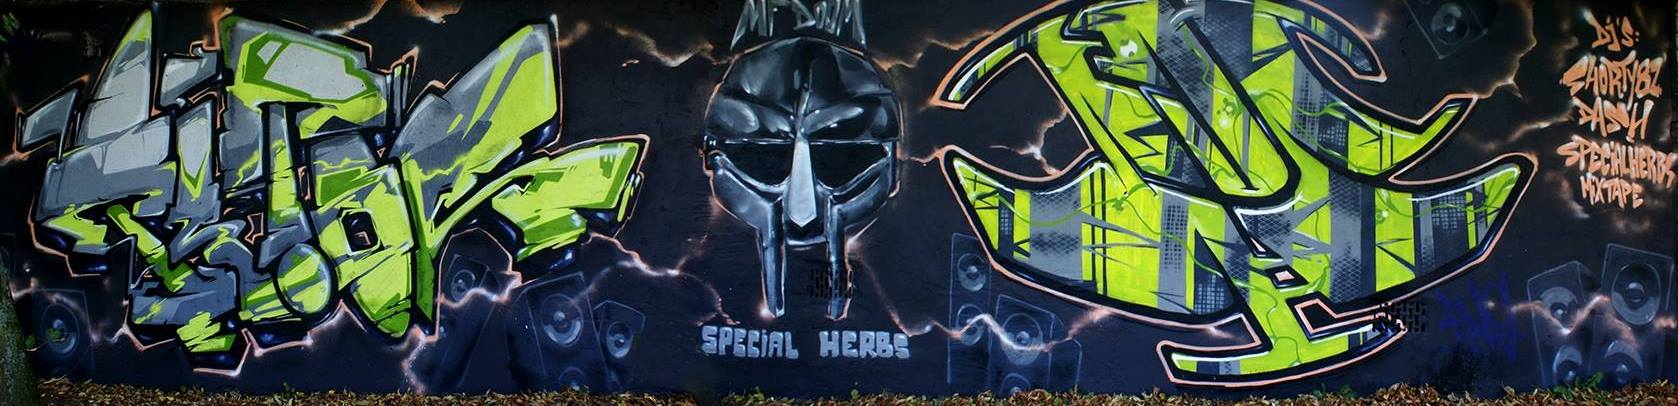 special-herbs-wall